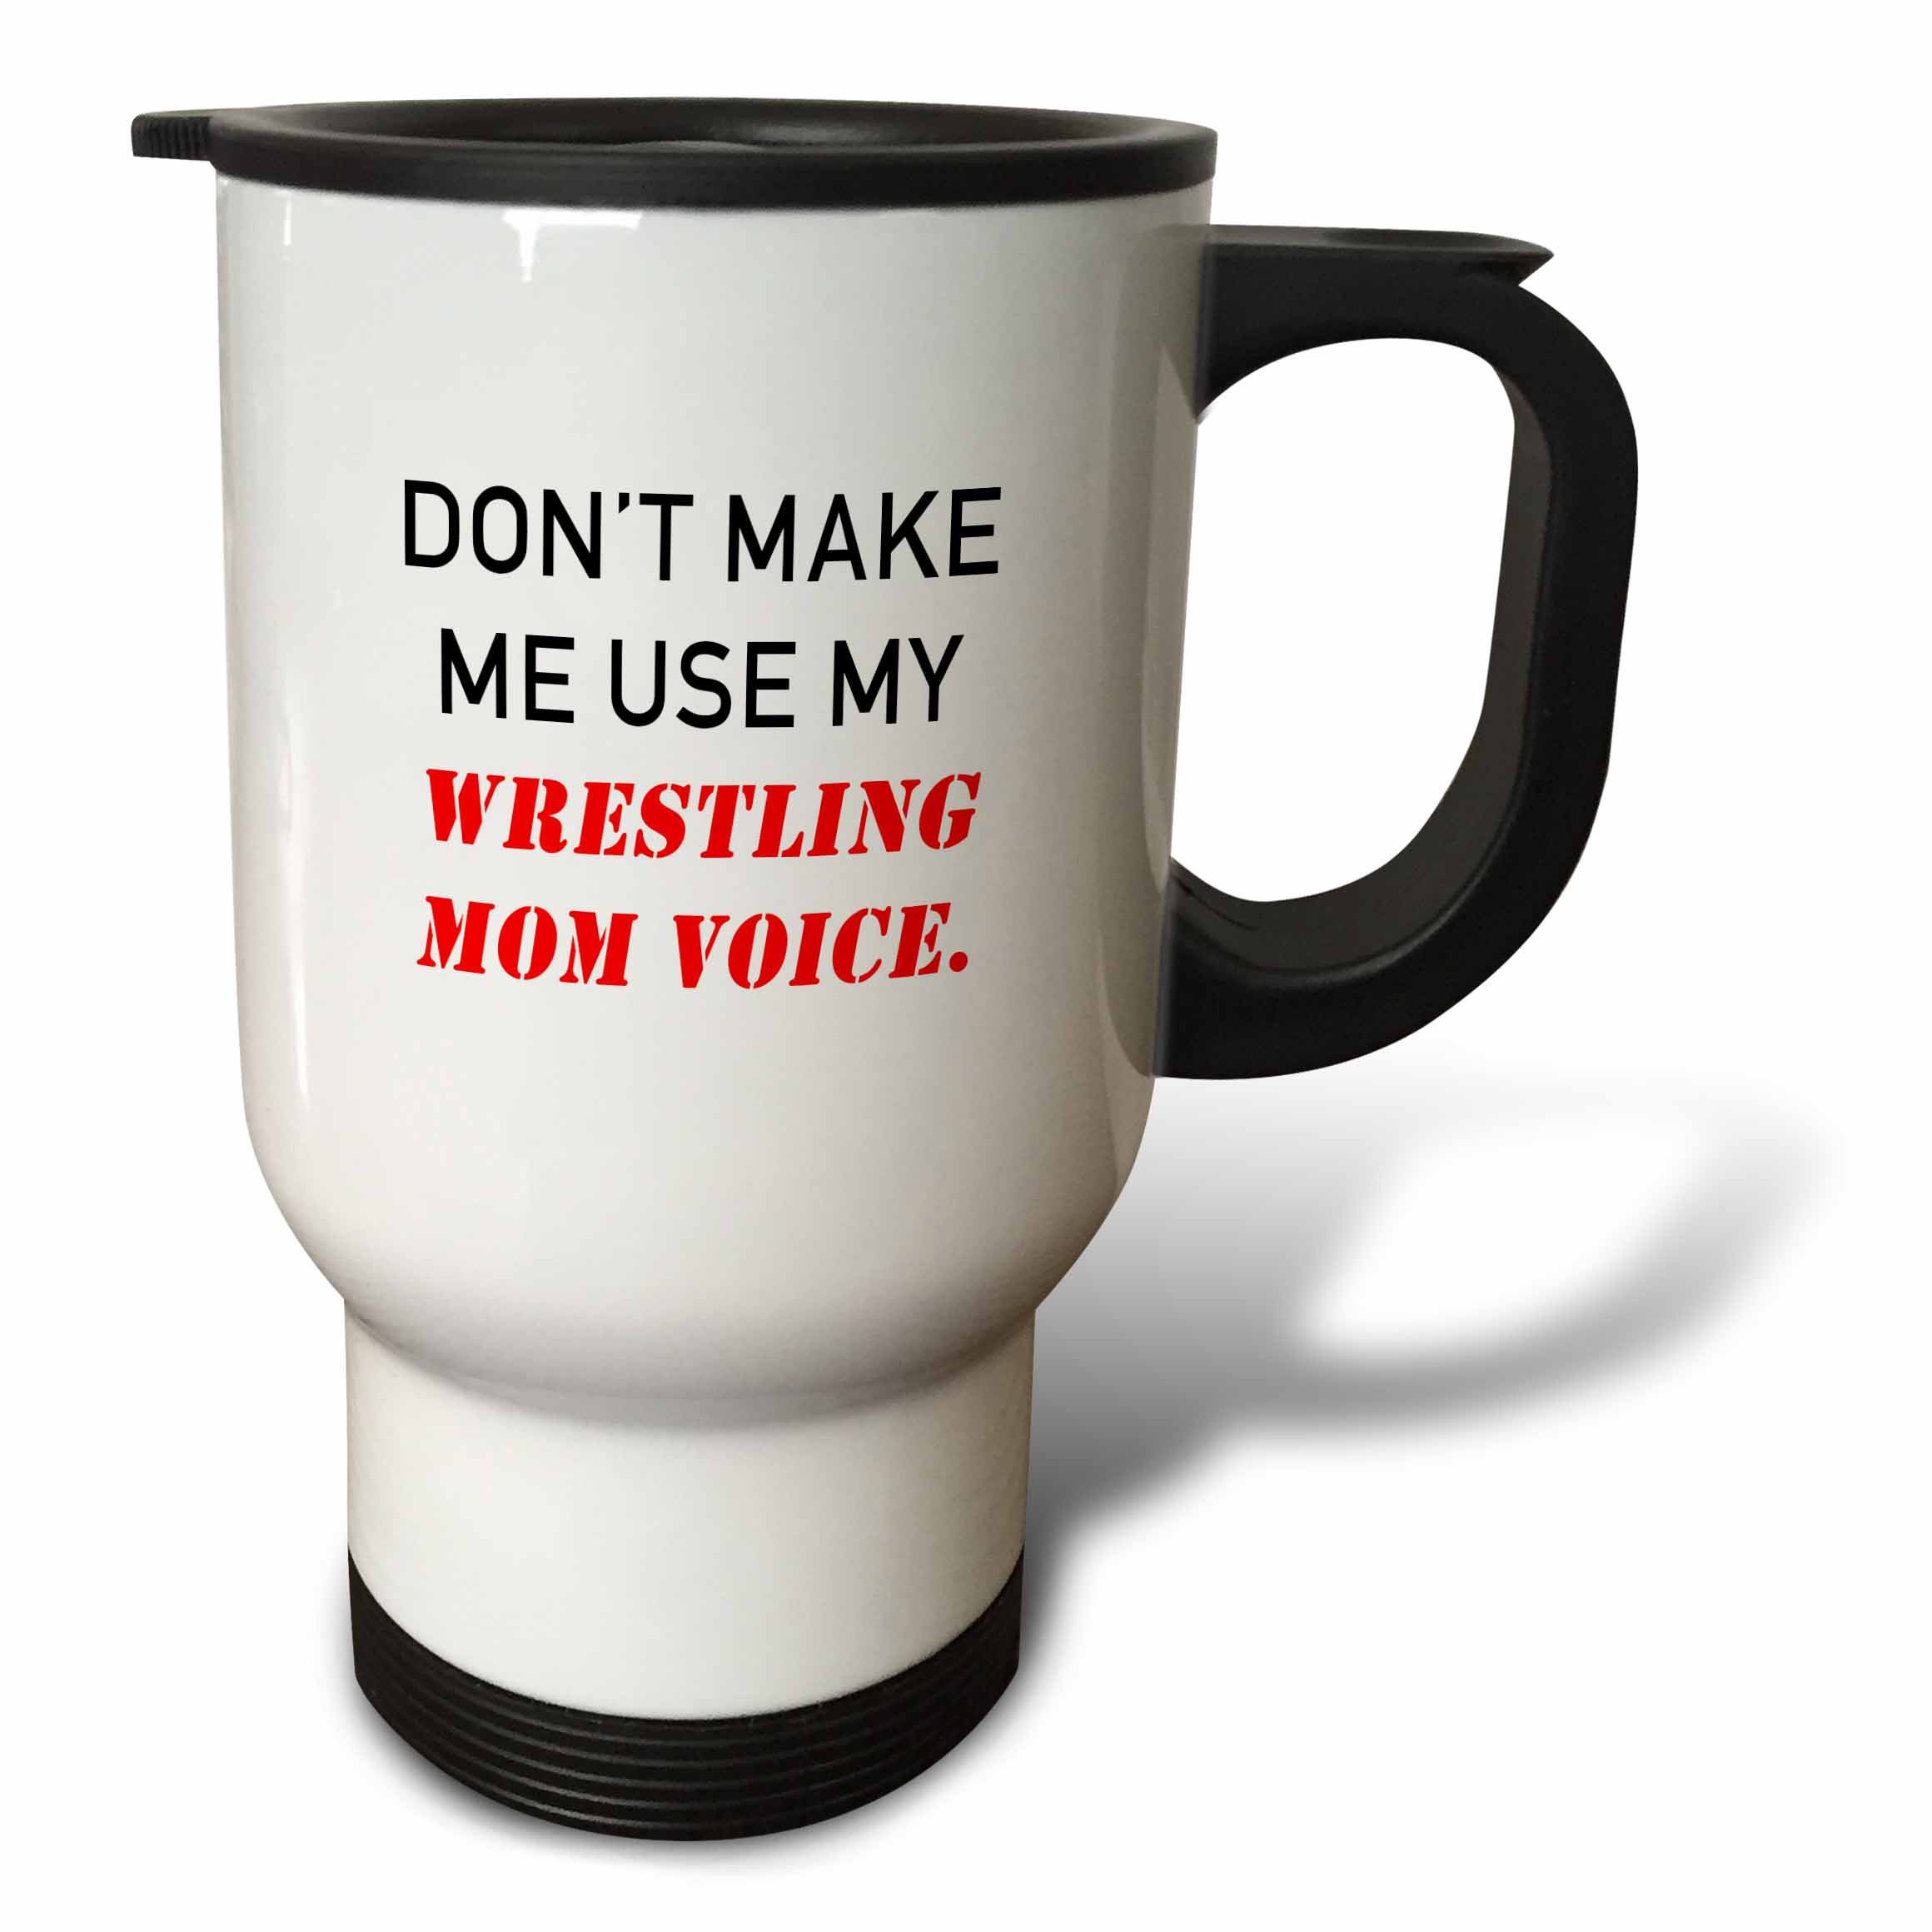 3dRose DONT MAKE ME USE MY WRESTLING MOM VOICE. - Travel Mug, 14-ounce, Stainless Steel